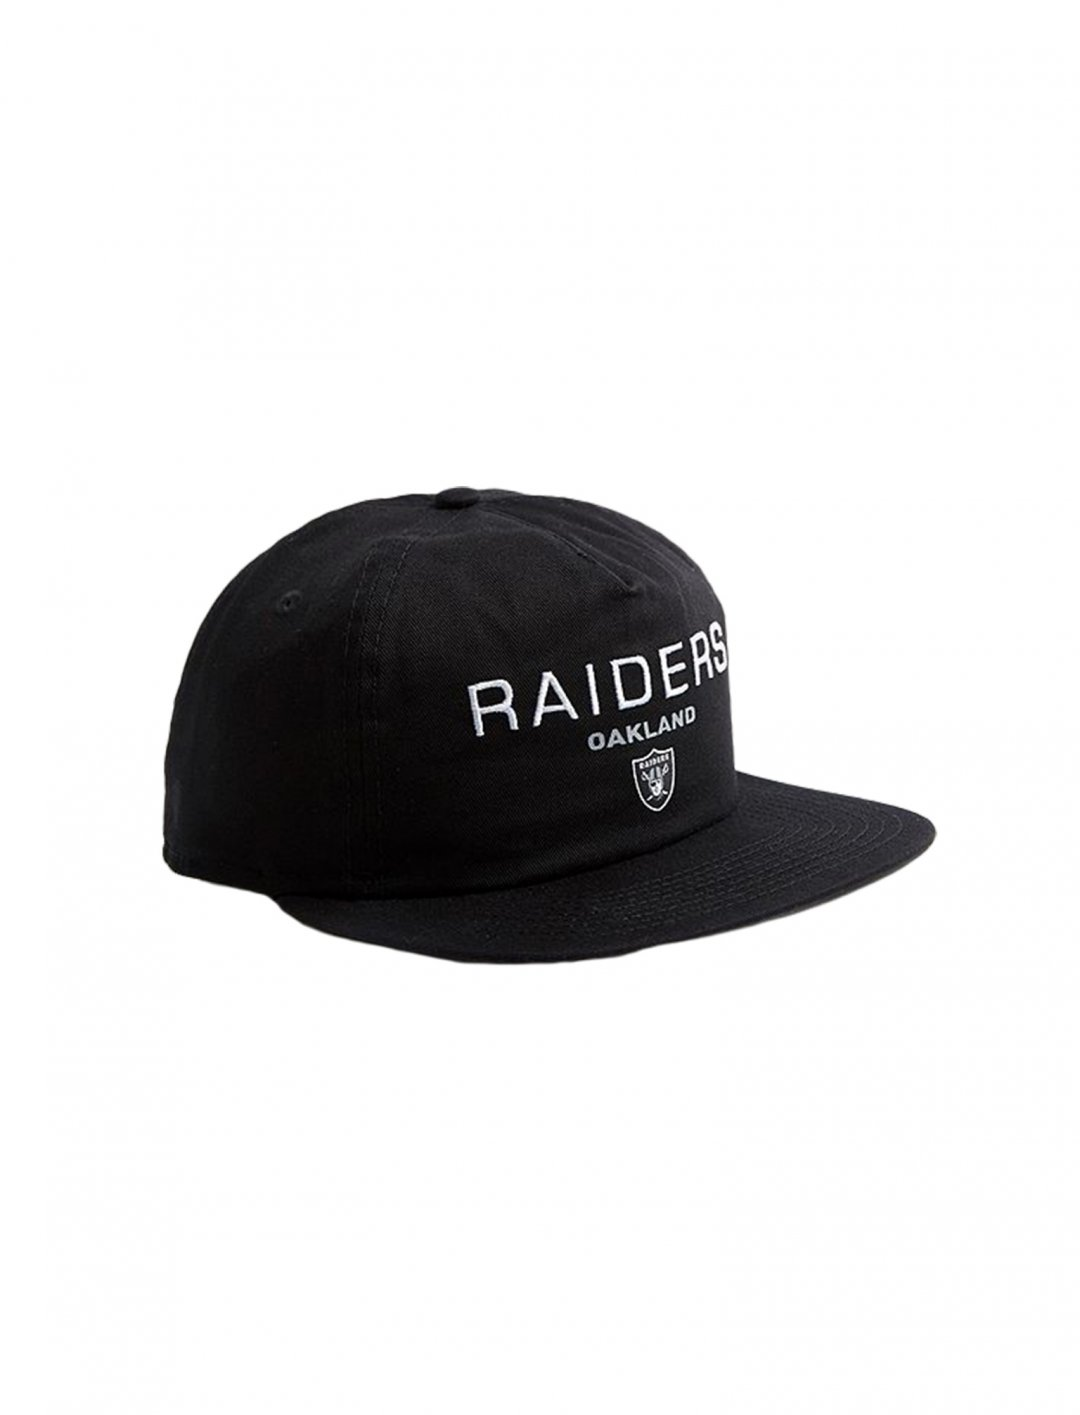 "New Era Oakland Raiders Cap {""id"":16,""product_section_id"":1,""name"":""Accessories"",""order"":15} New Era"